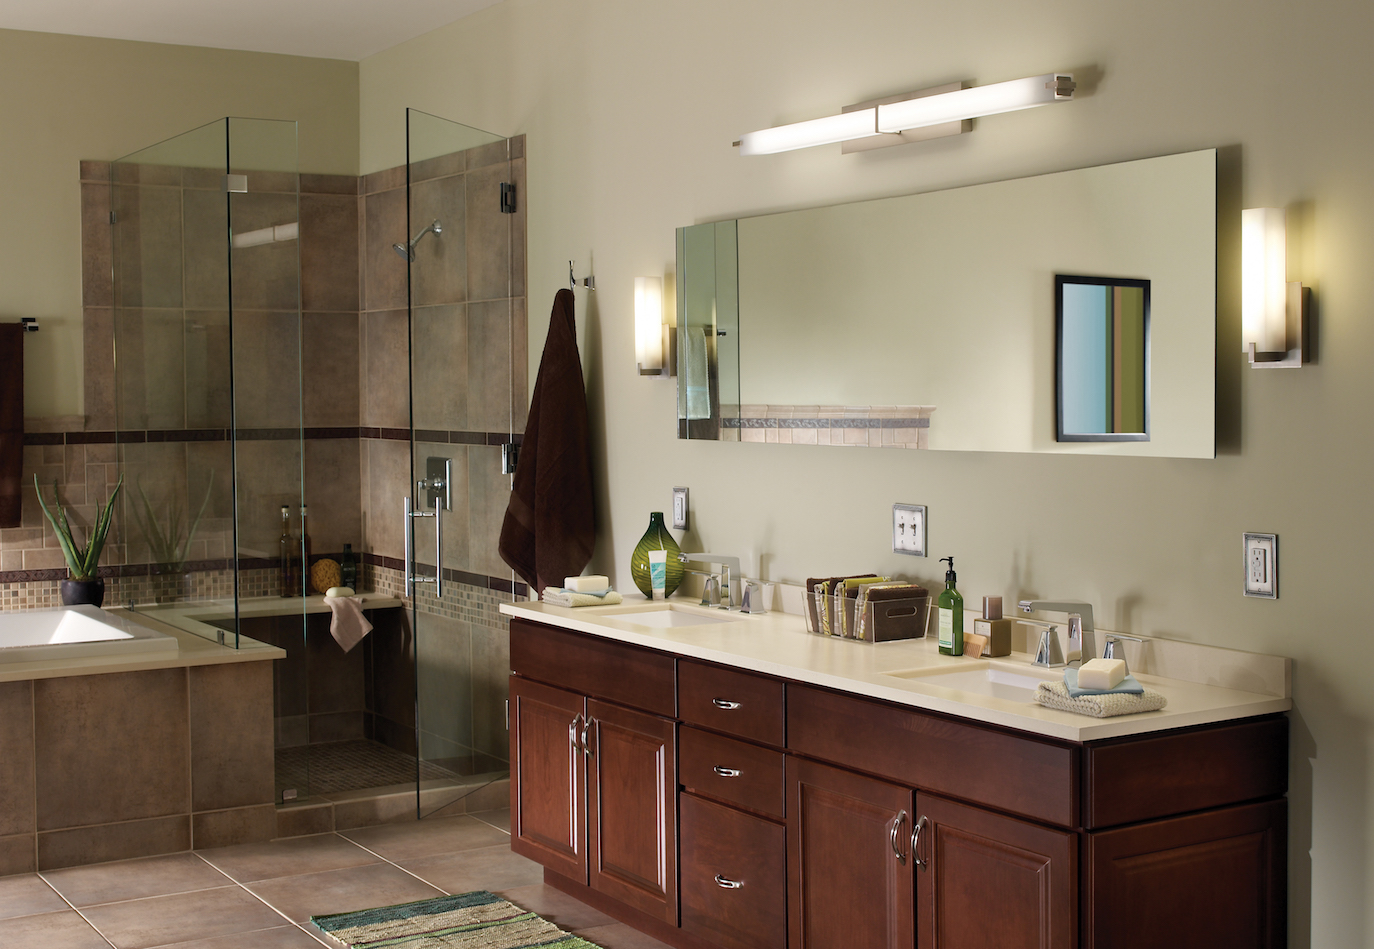 Bathroom Sconces Images bathroom lighting buying guide | design necessities lighting